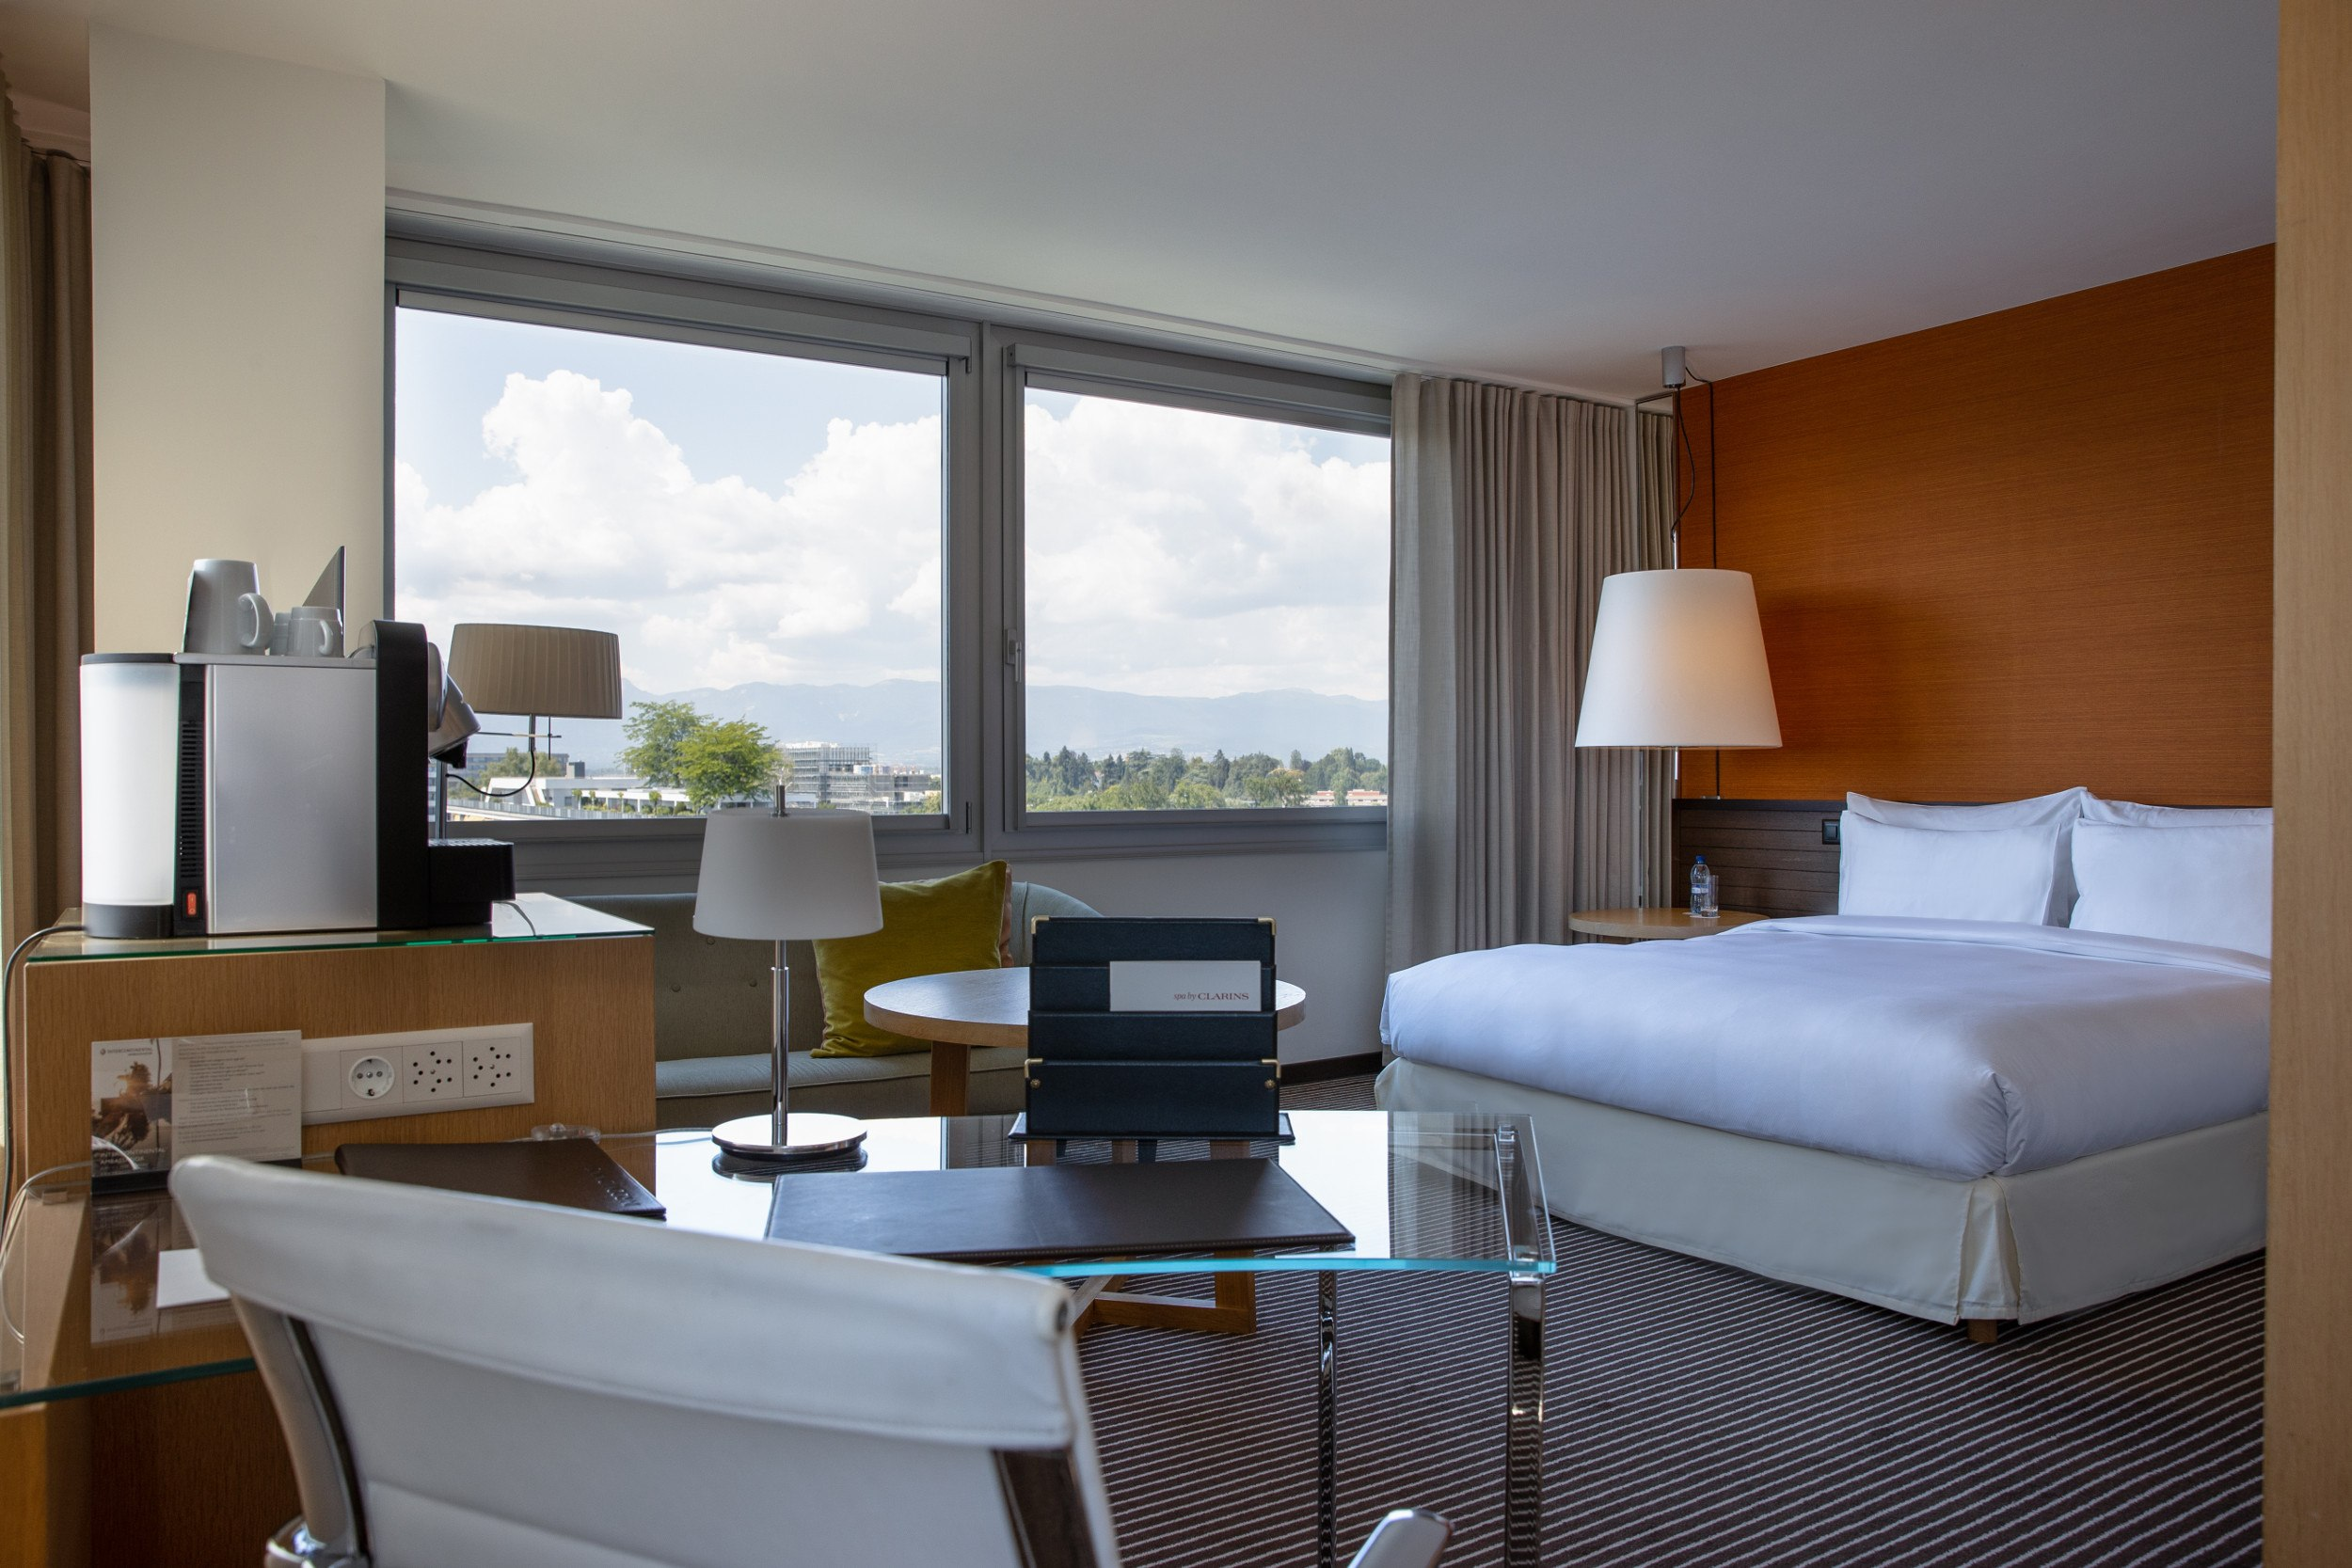 InterContinental-Geneva-Hotel-Executive-room-1